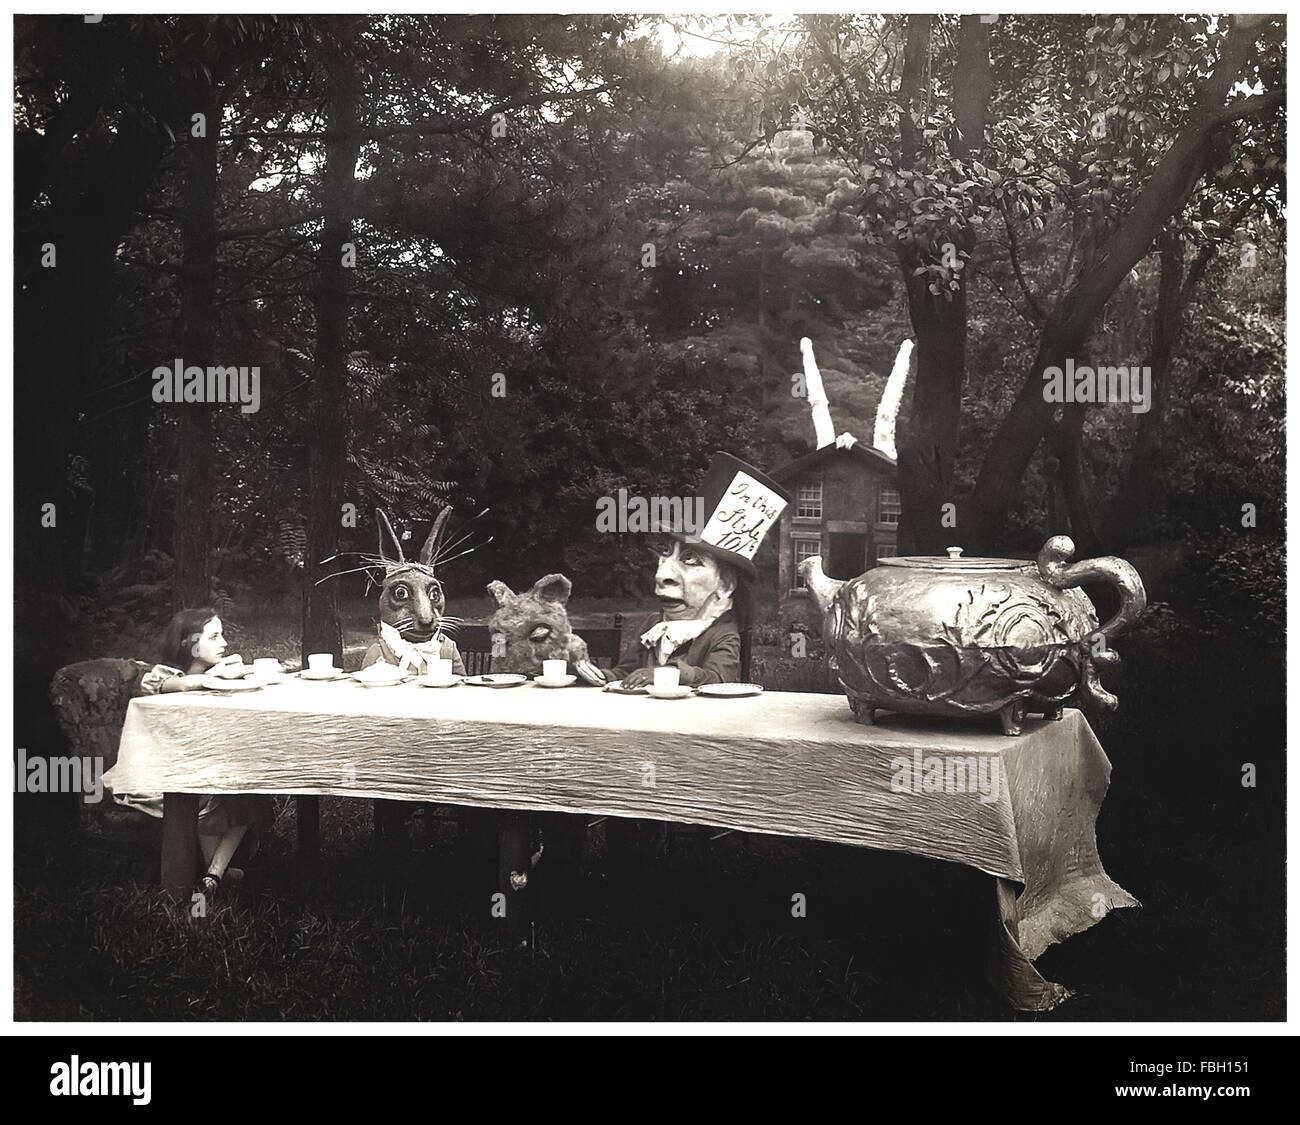 The Mad Hatters Tea Party Scene From 1915 Silent Movie Adaptation Of Alice In Wonderland By Lewis Carroll Directed WW Young